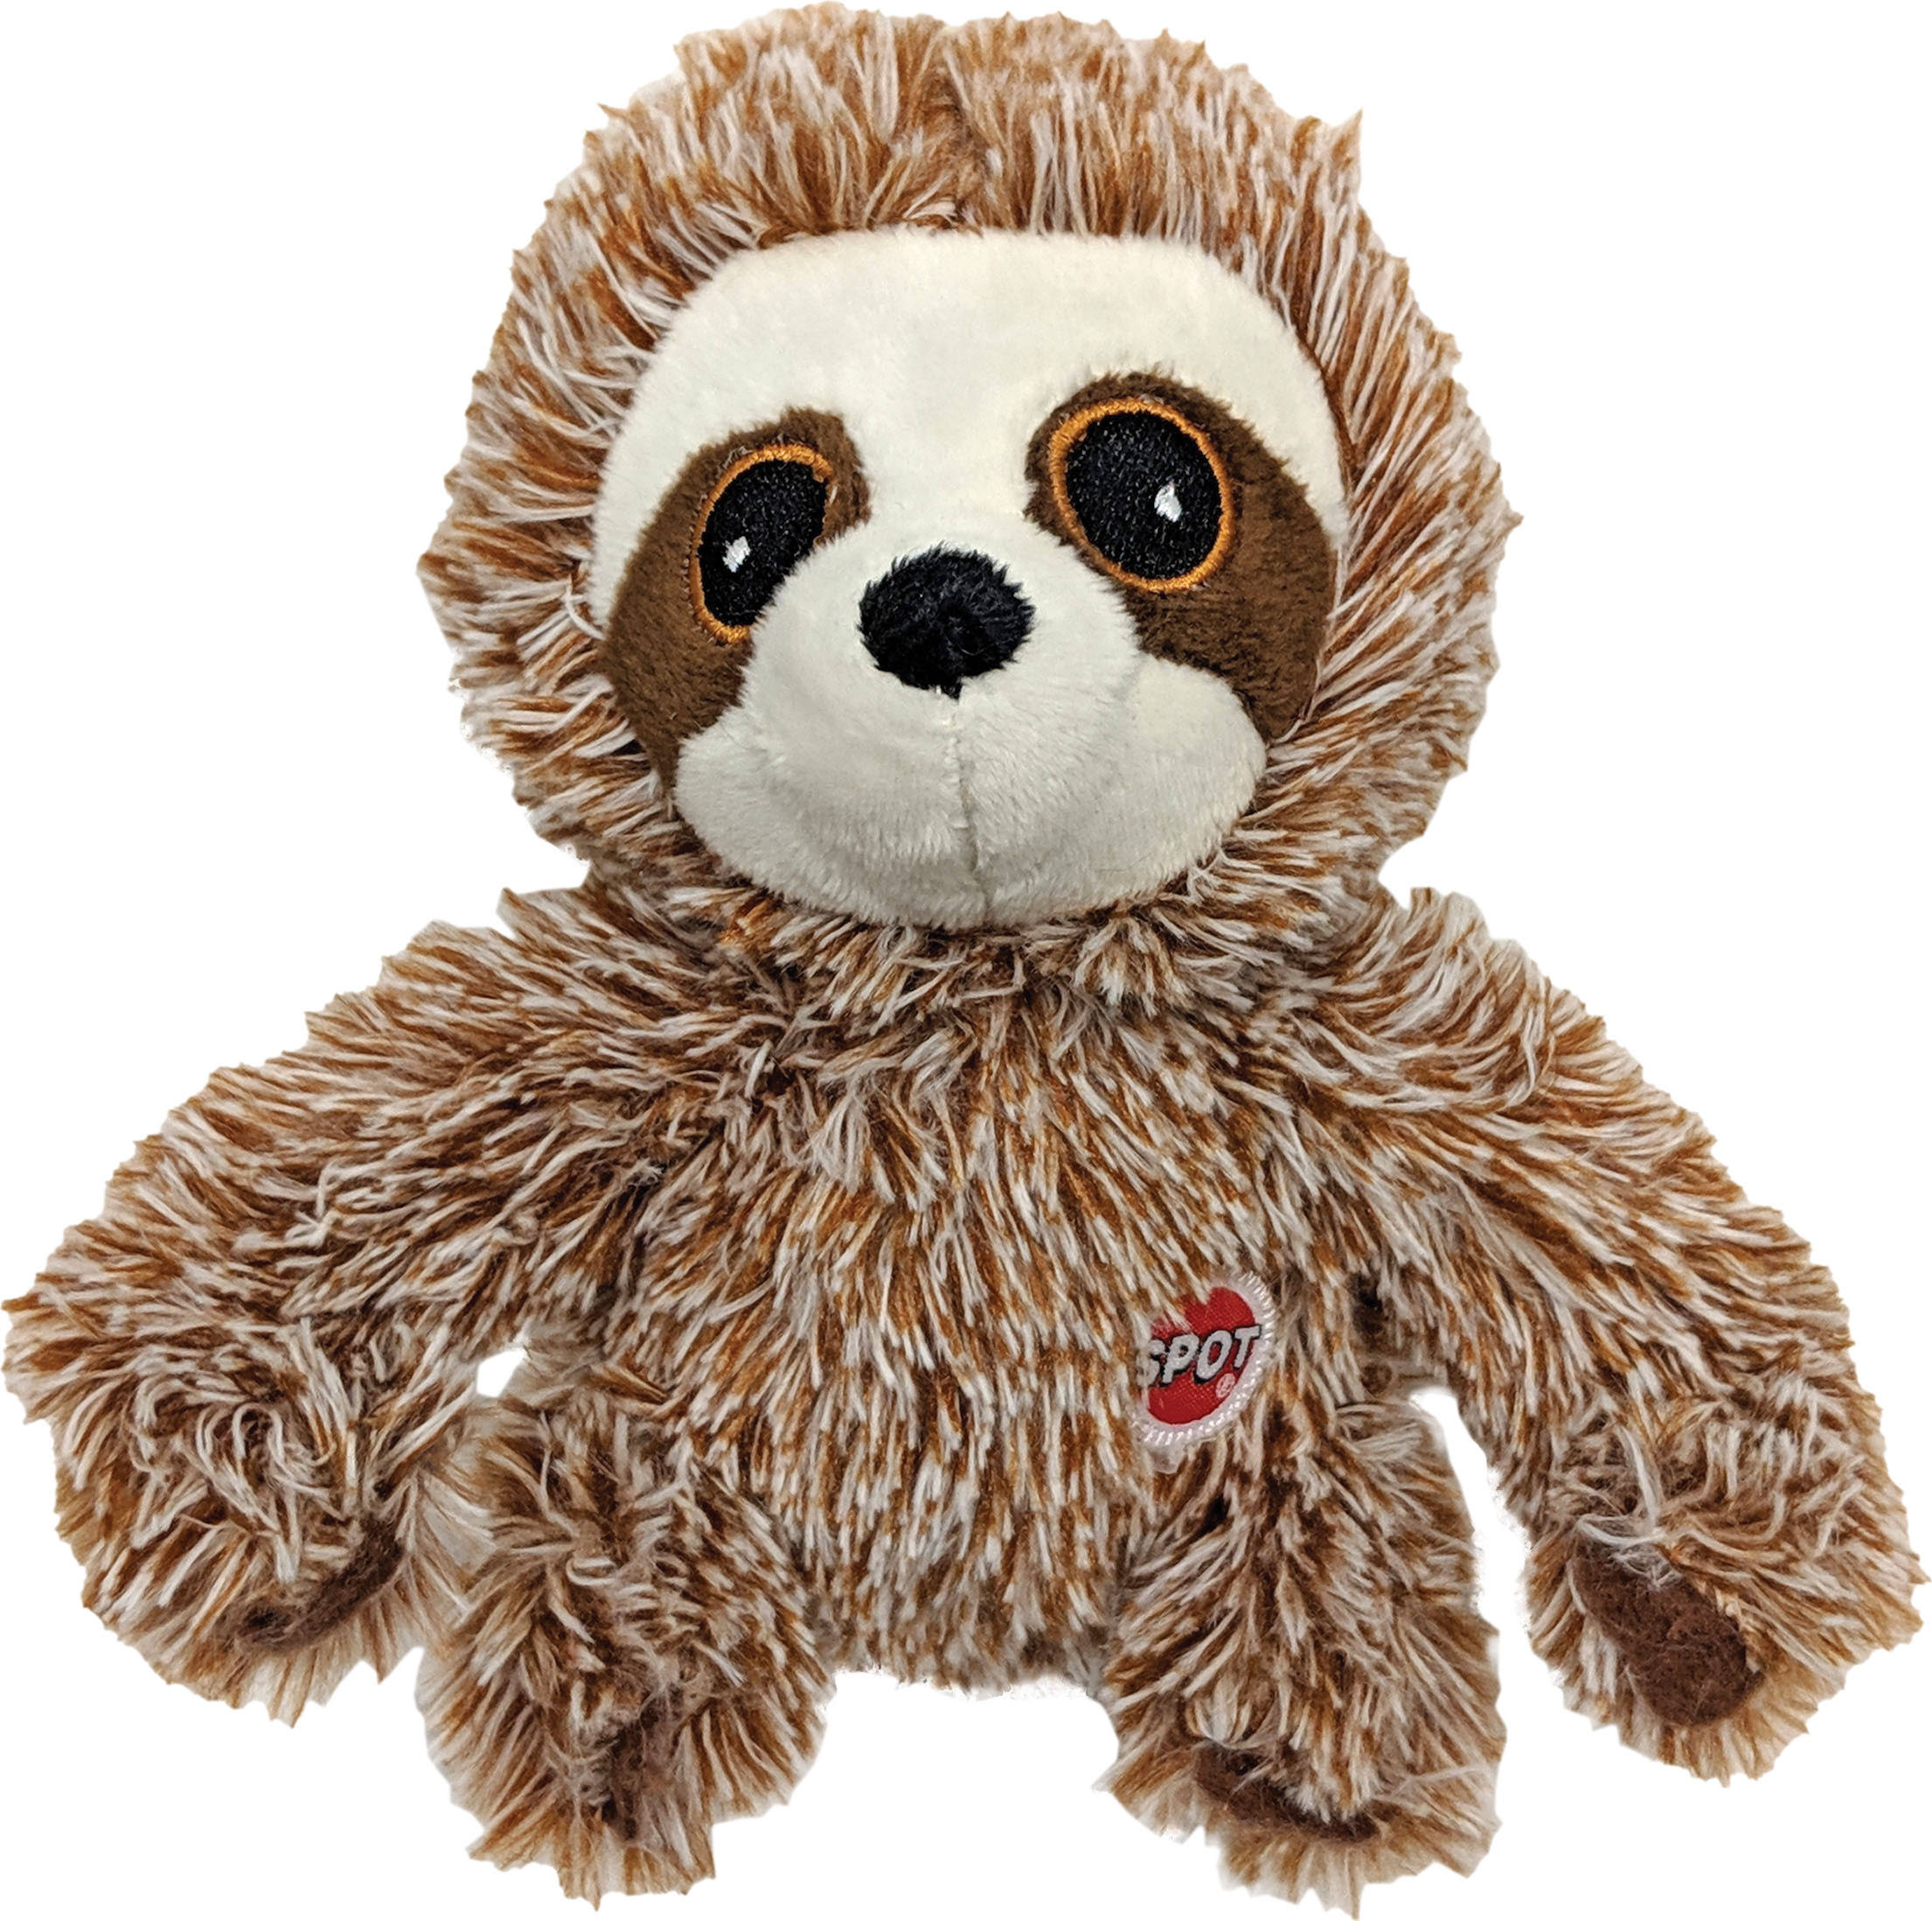 Ethical Dog Fun Sloth Plush Toy